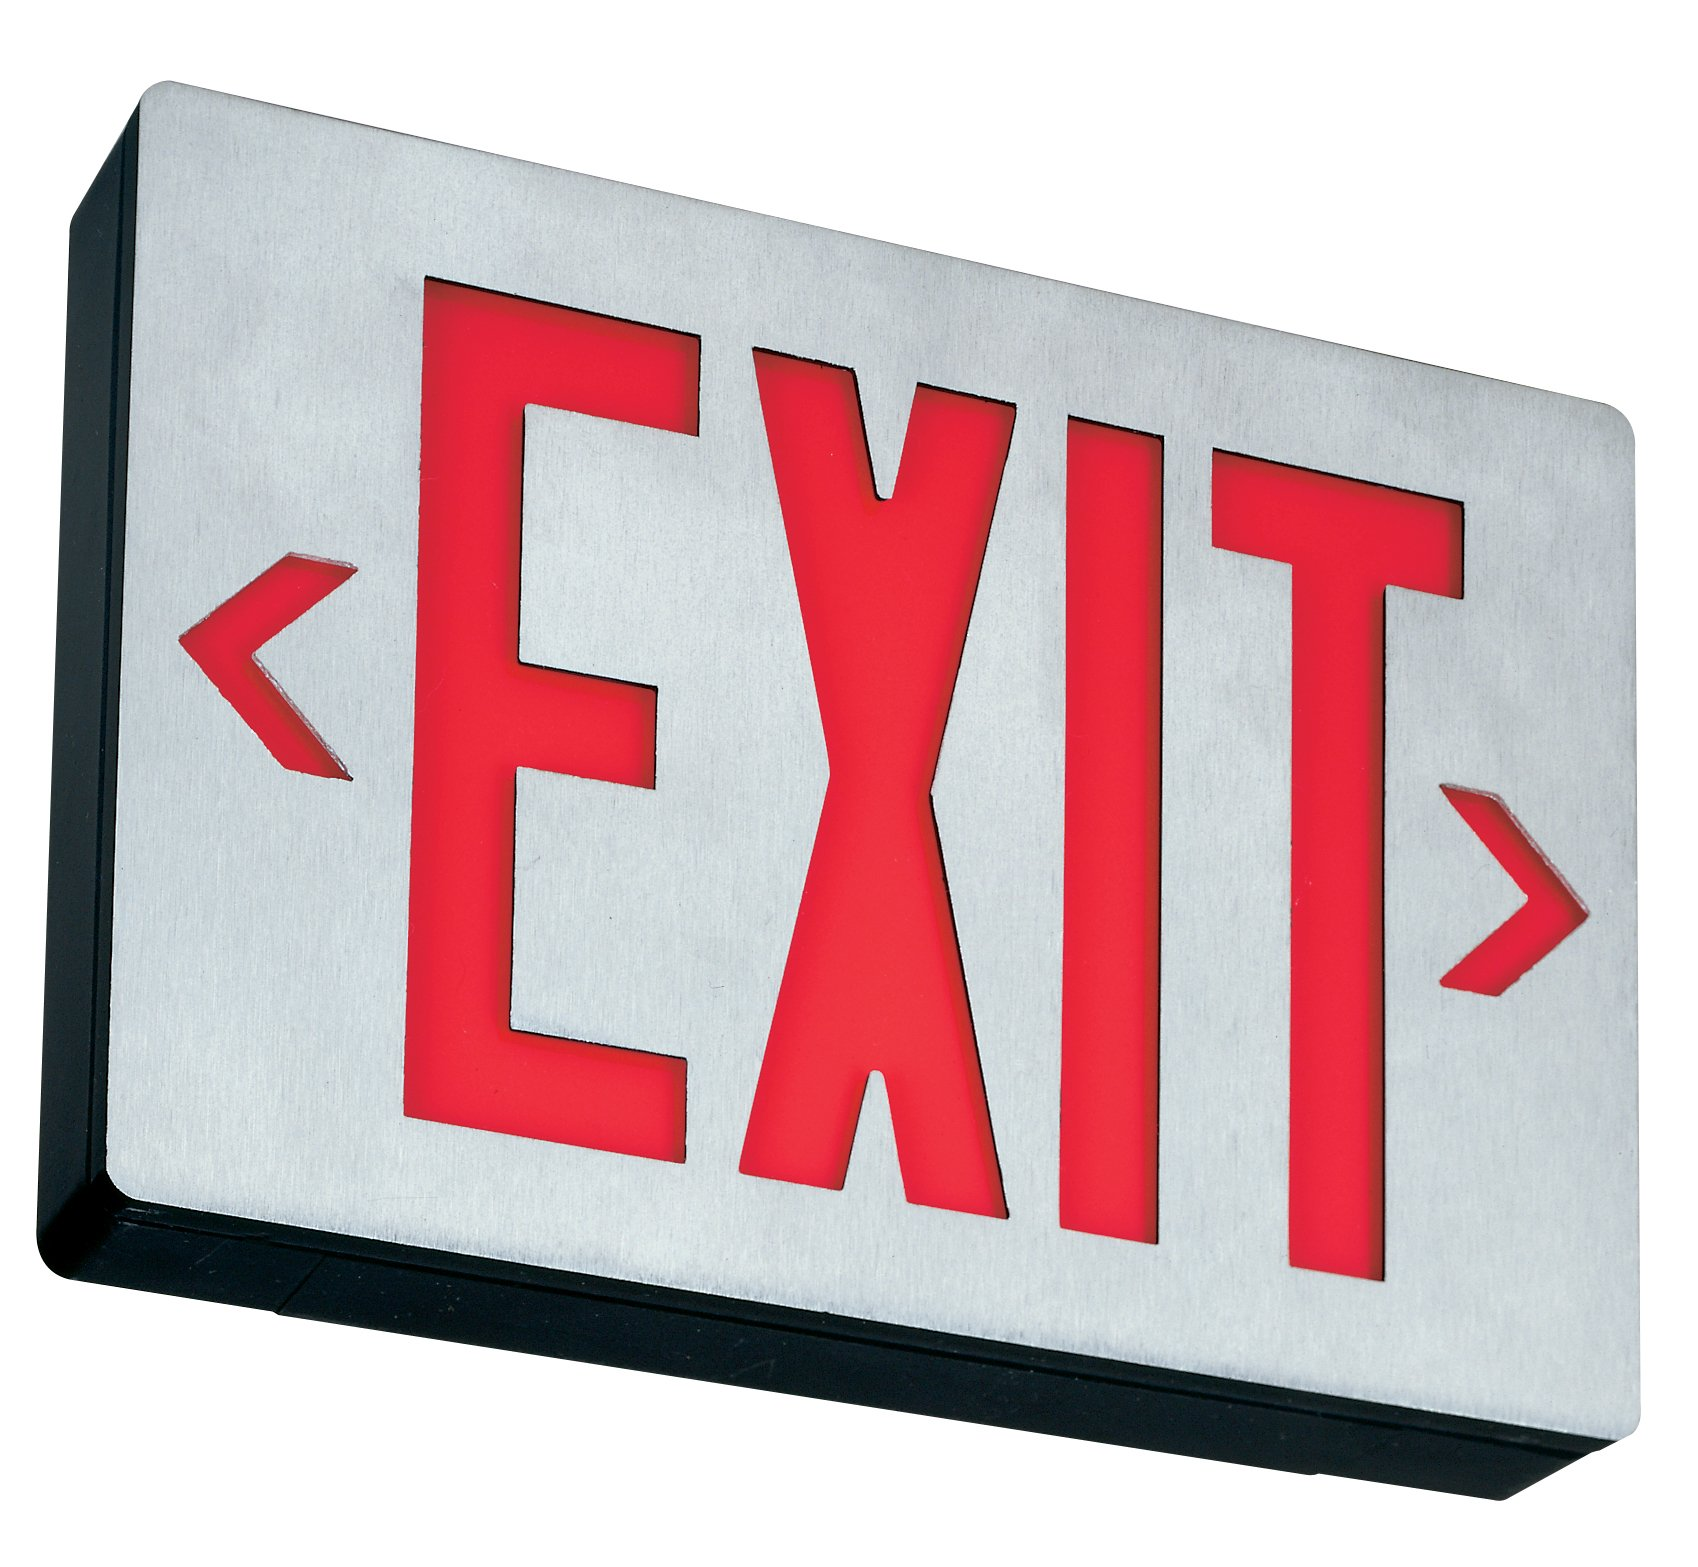 Lithonia Lighting LE S 1 R EL N SD Aluminum LED Emergency Exit Sign